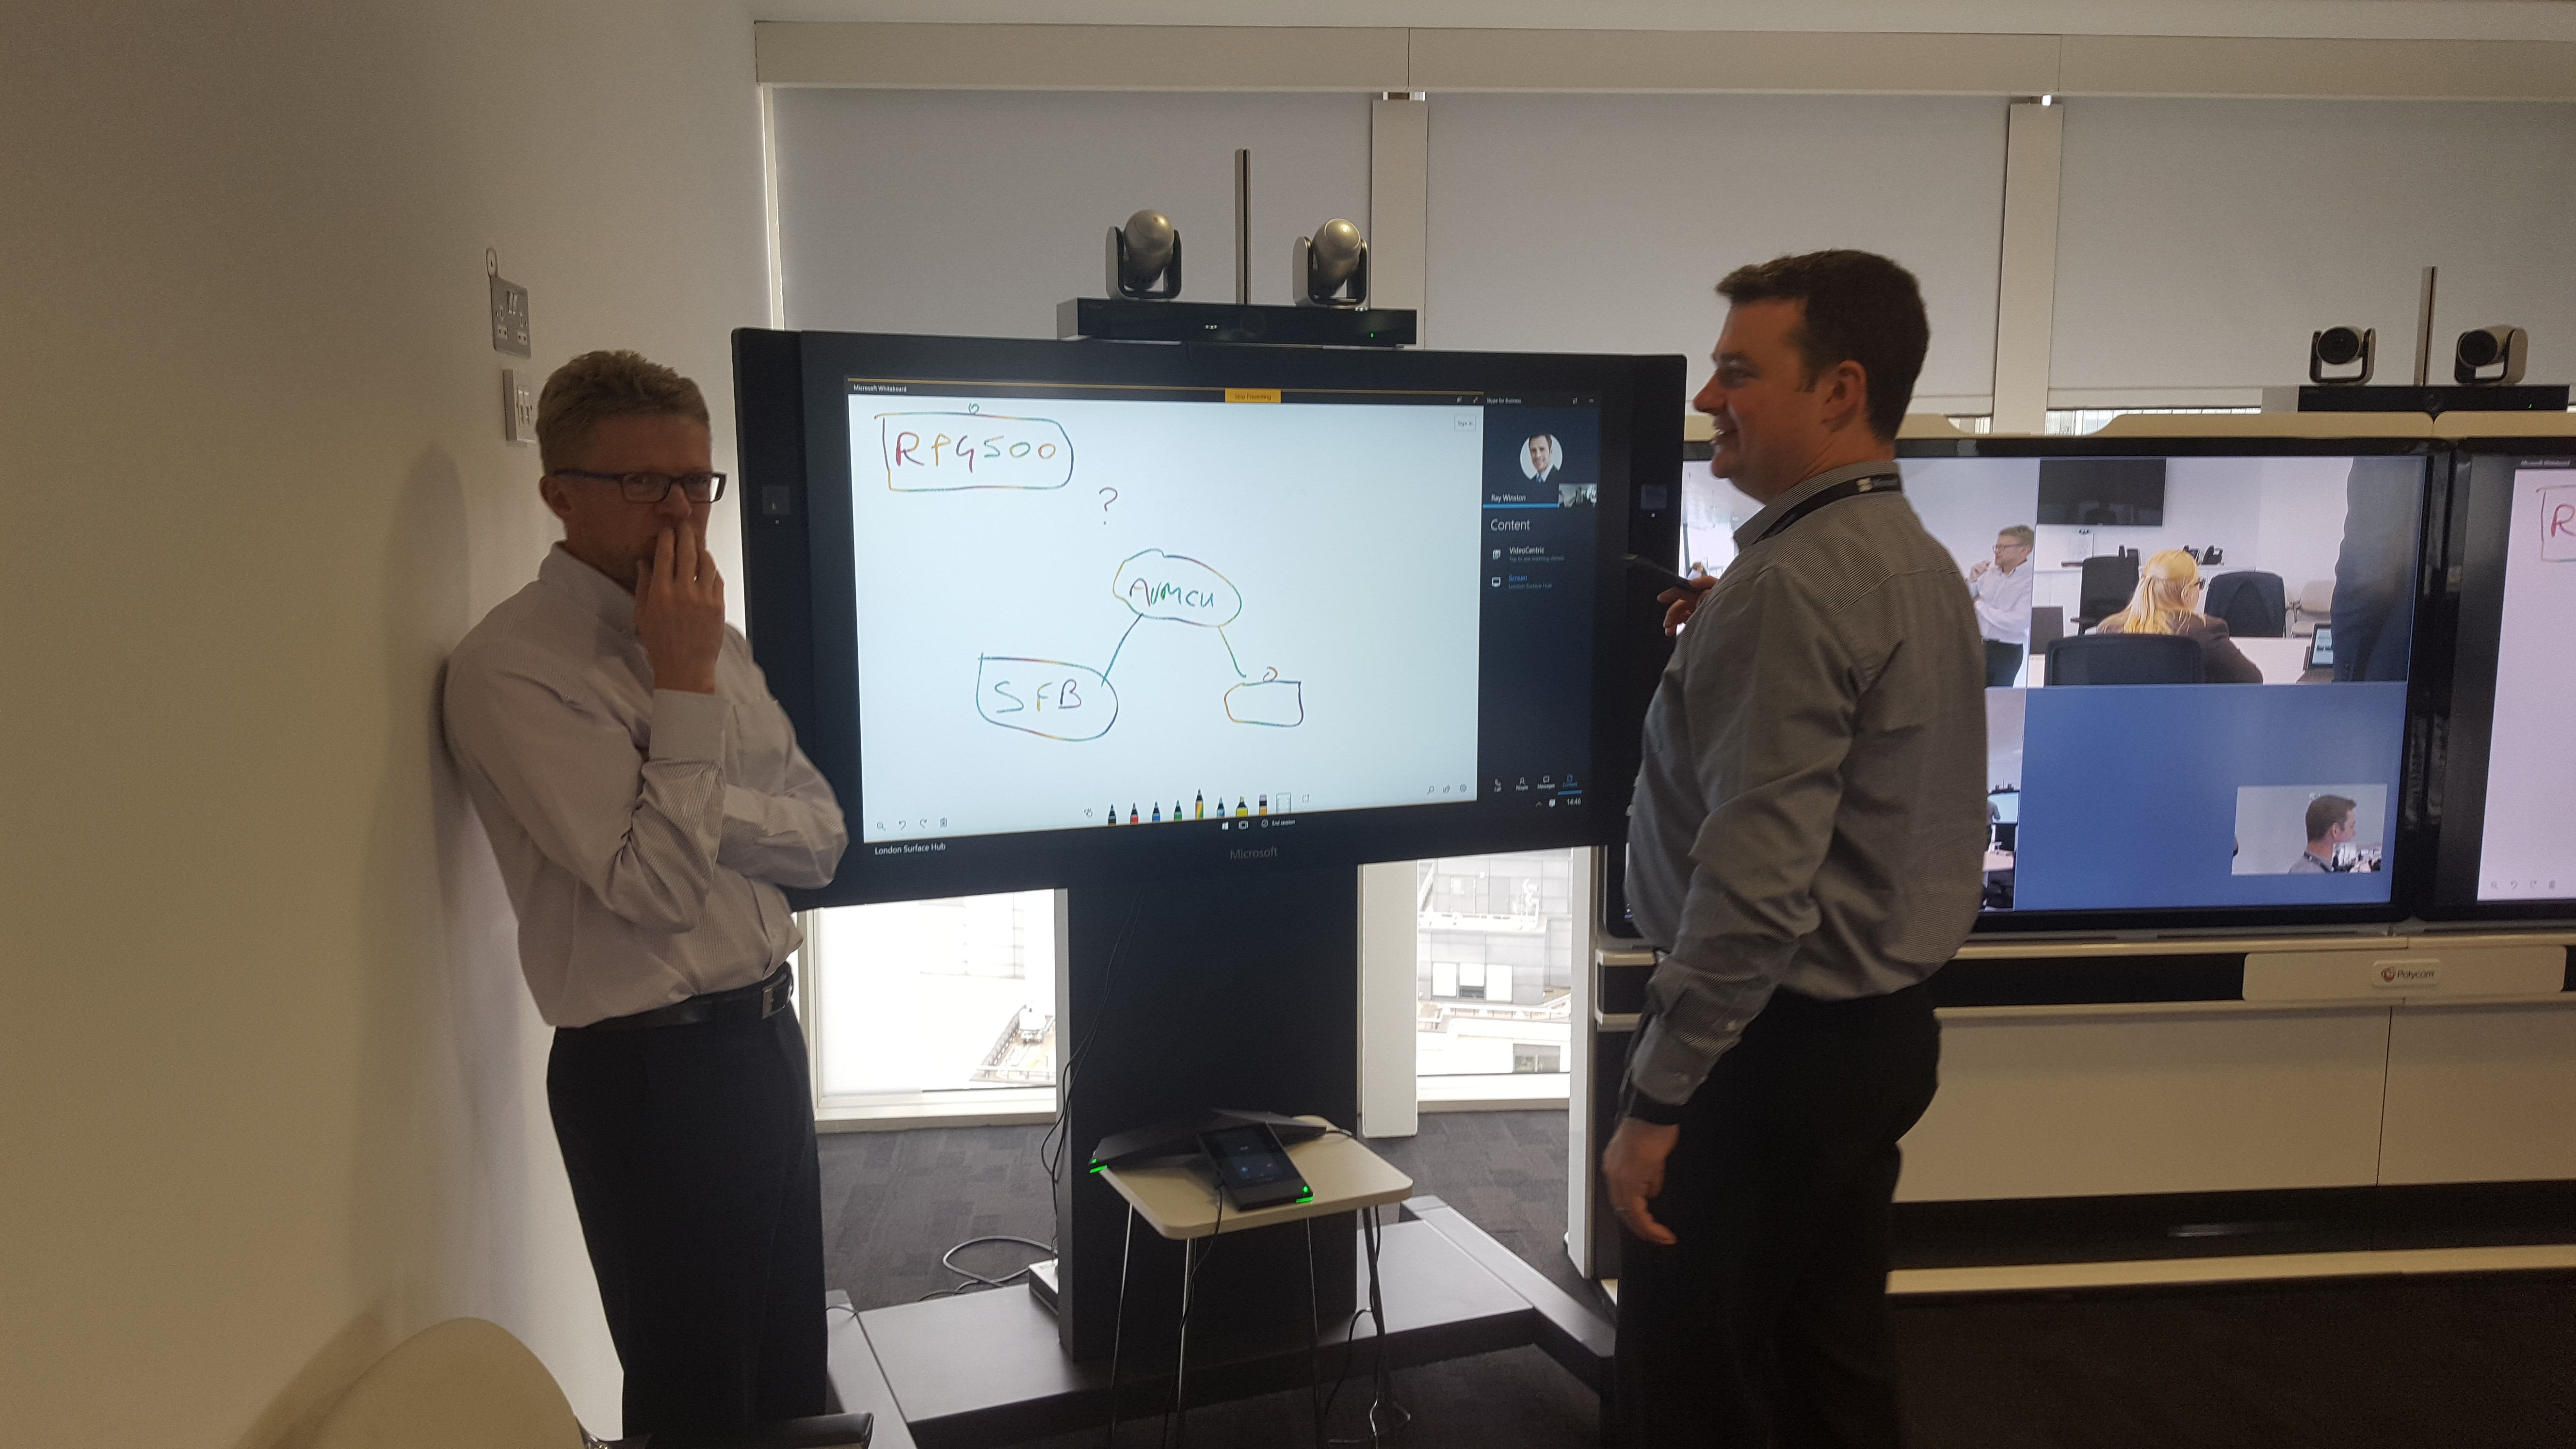 Polycom demonstrating Microsoft Surface Hub to VideoCentric